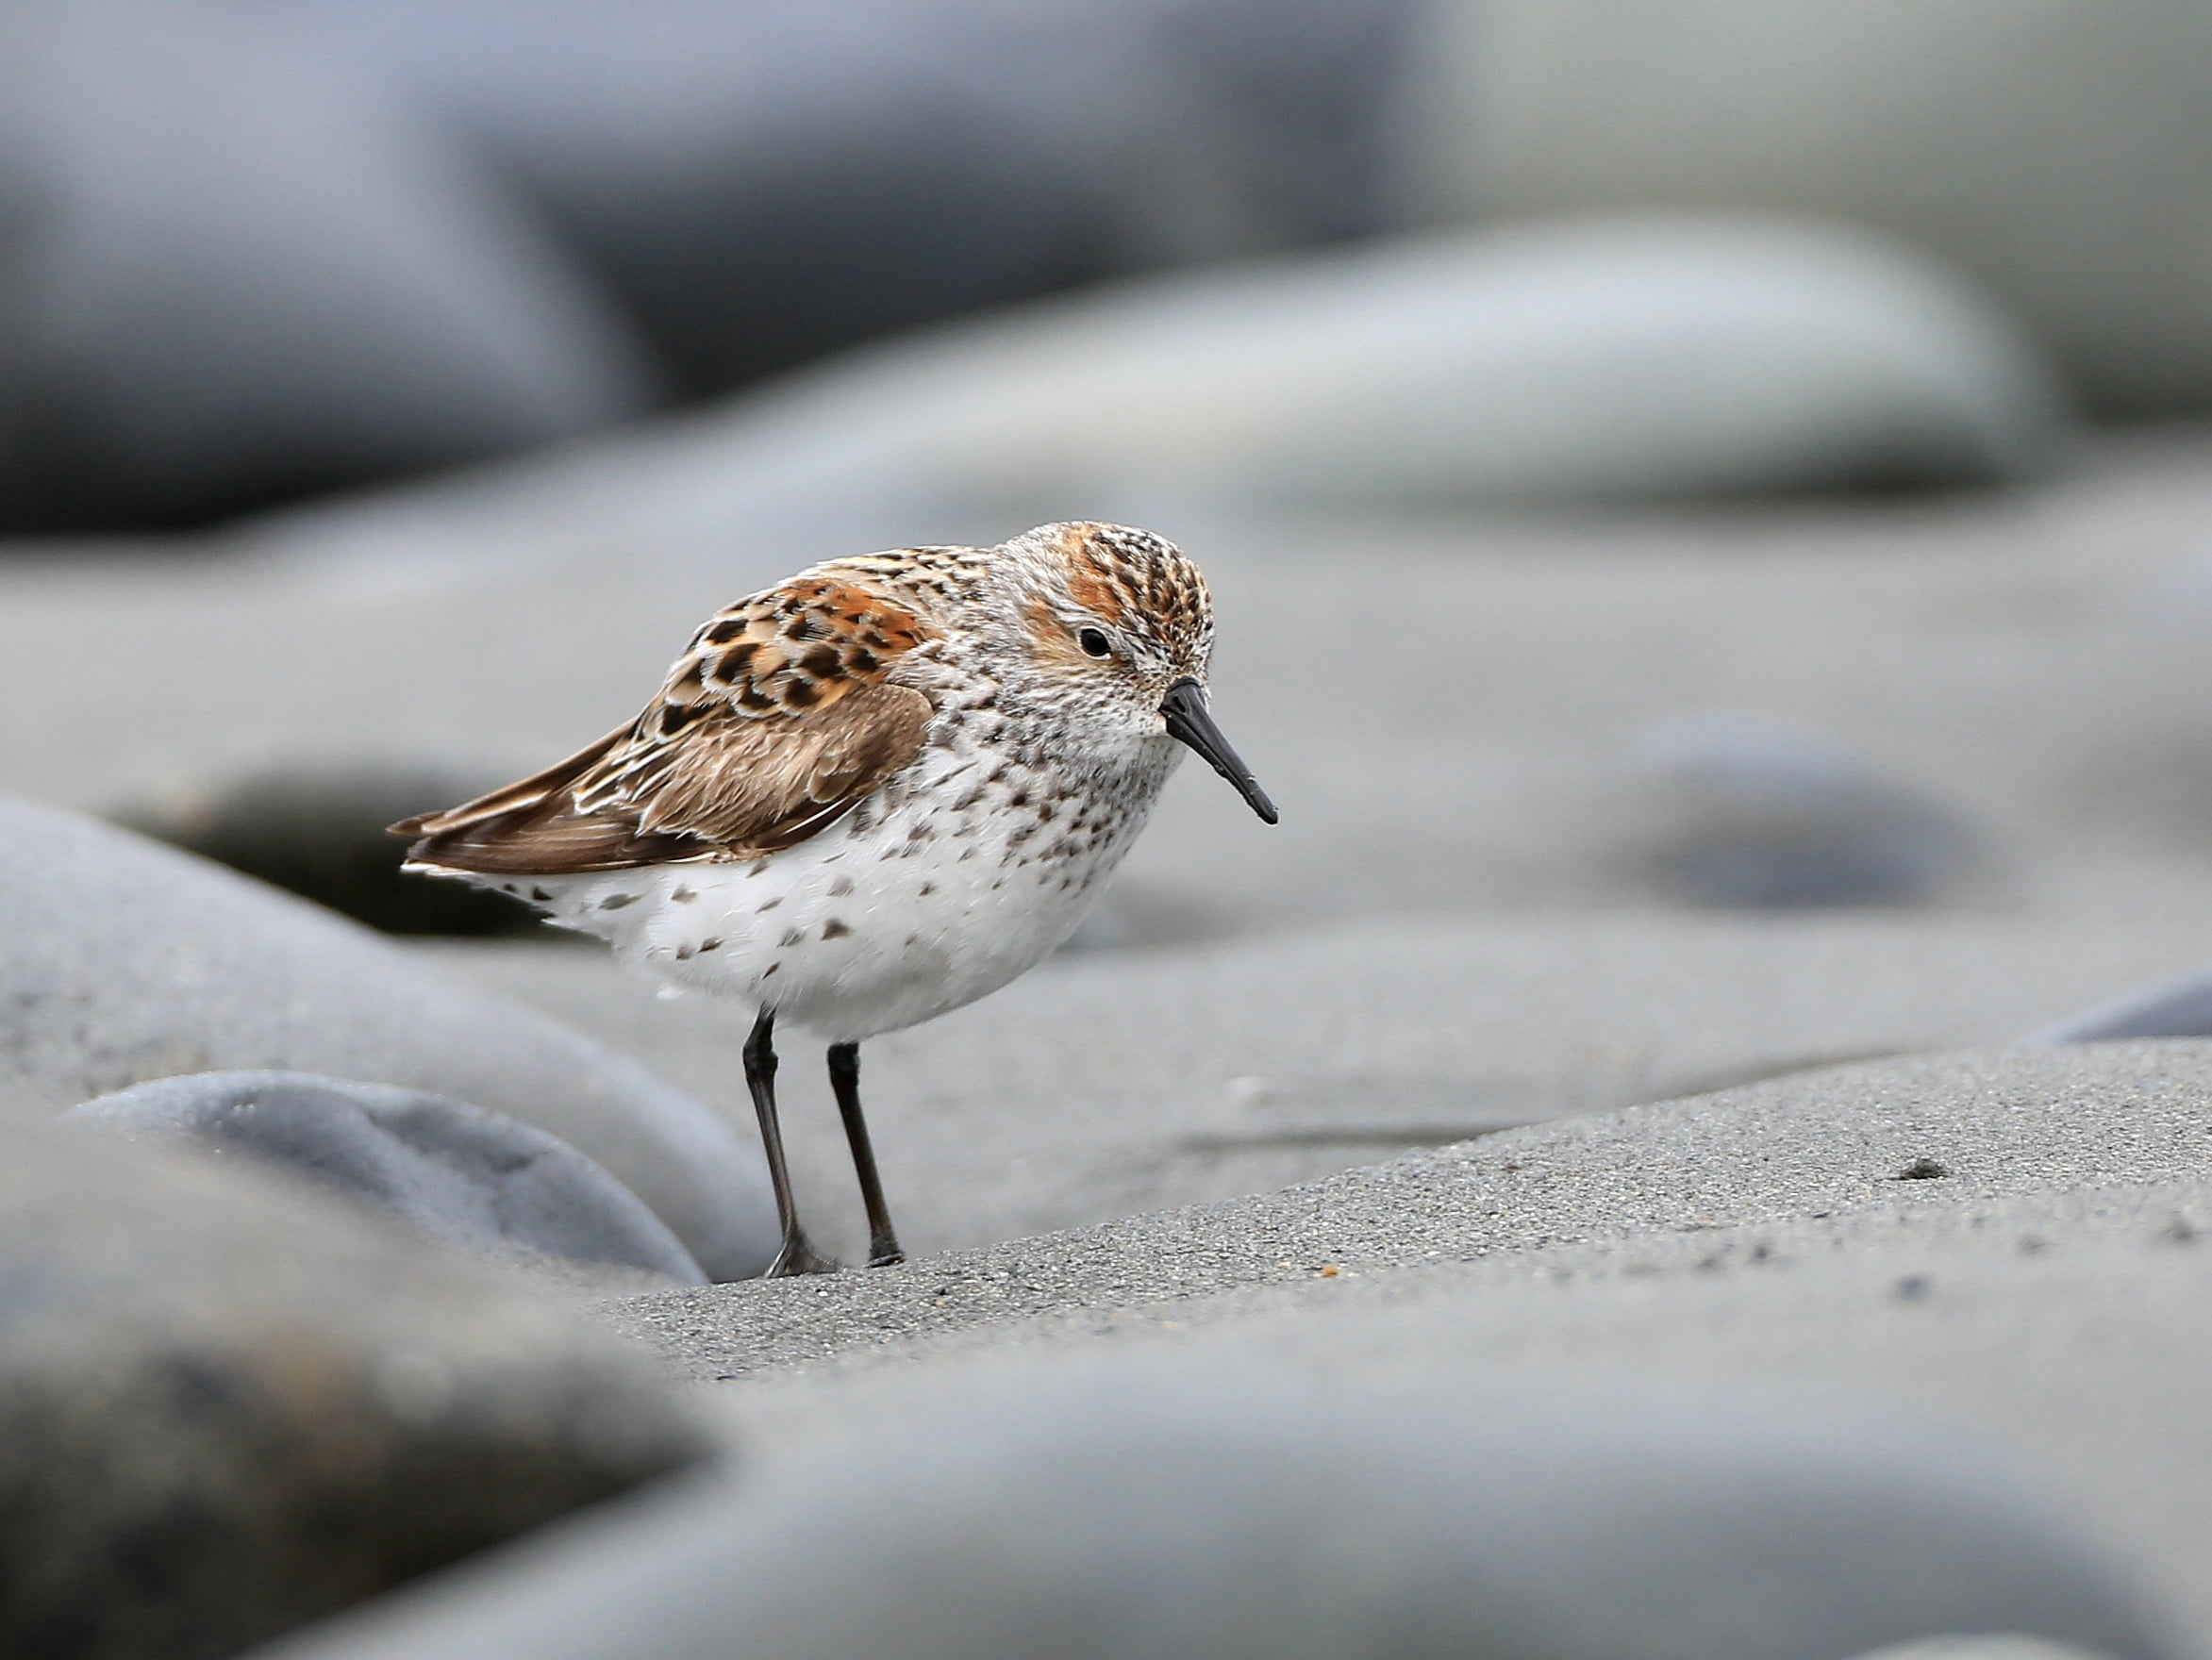 Close up photo of white and brown sea bird, western